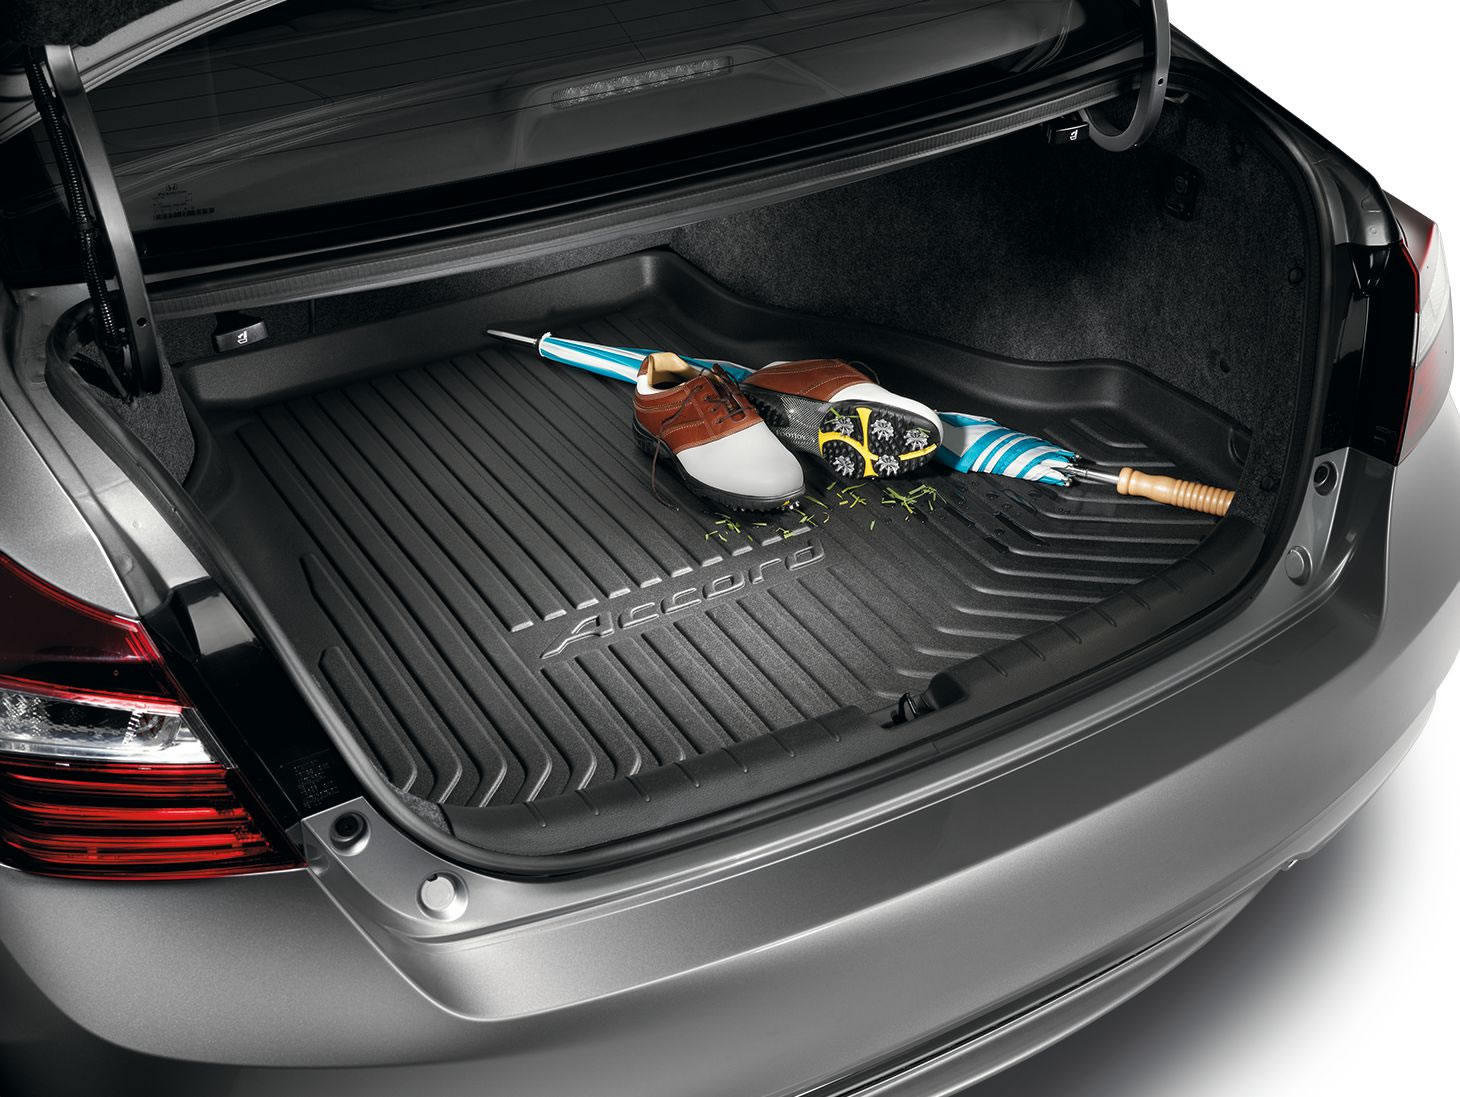 Honda online store : 2017 ACCORD TRUNK TRAY